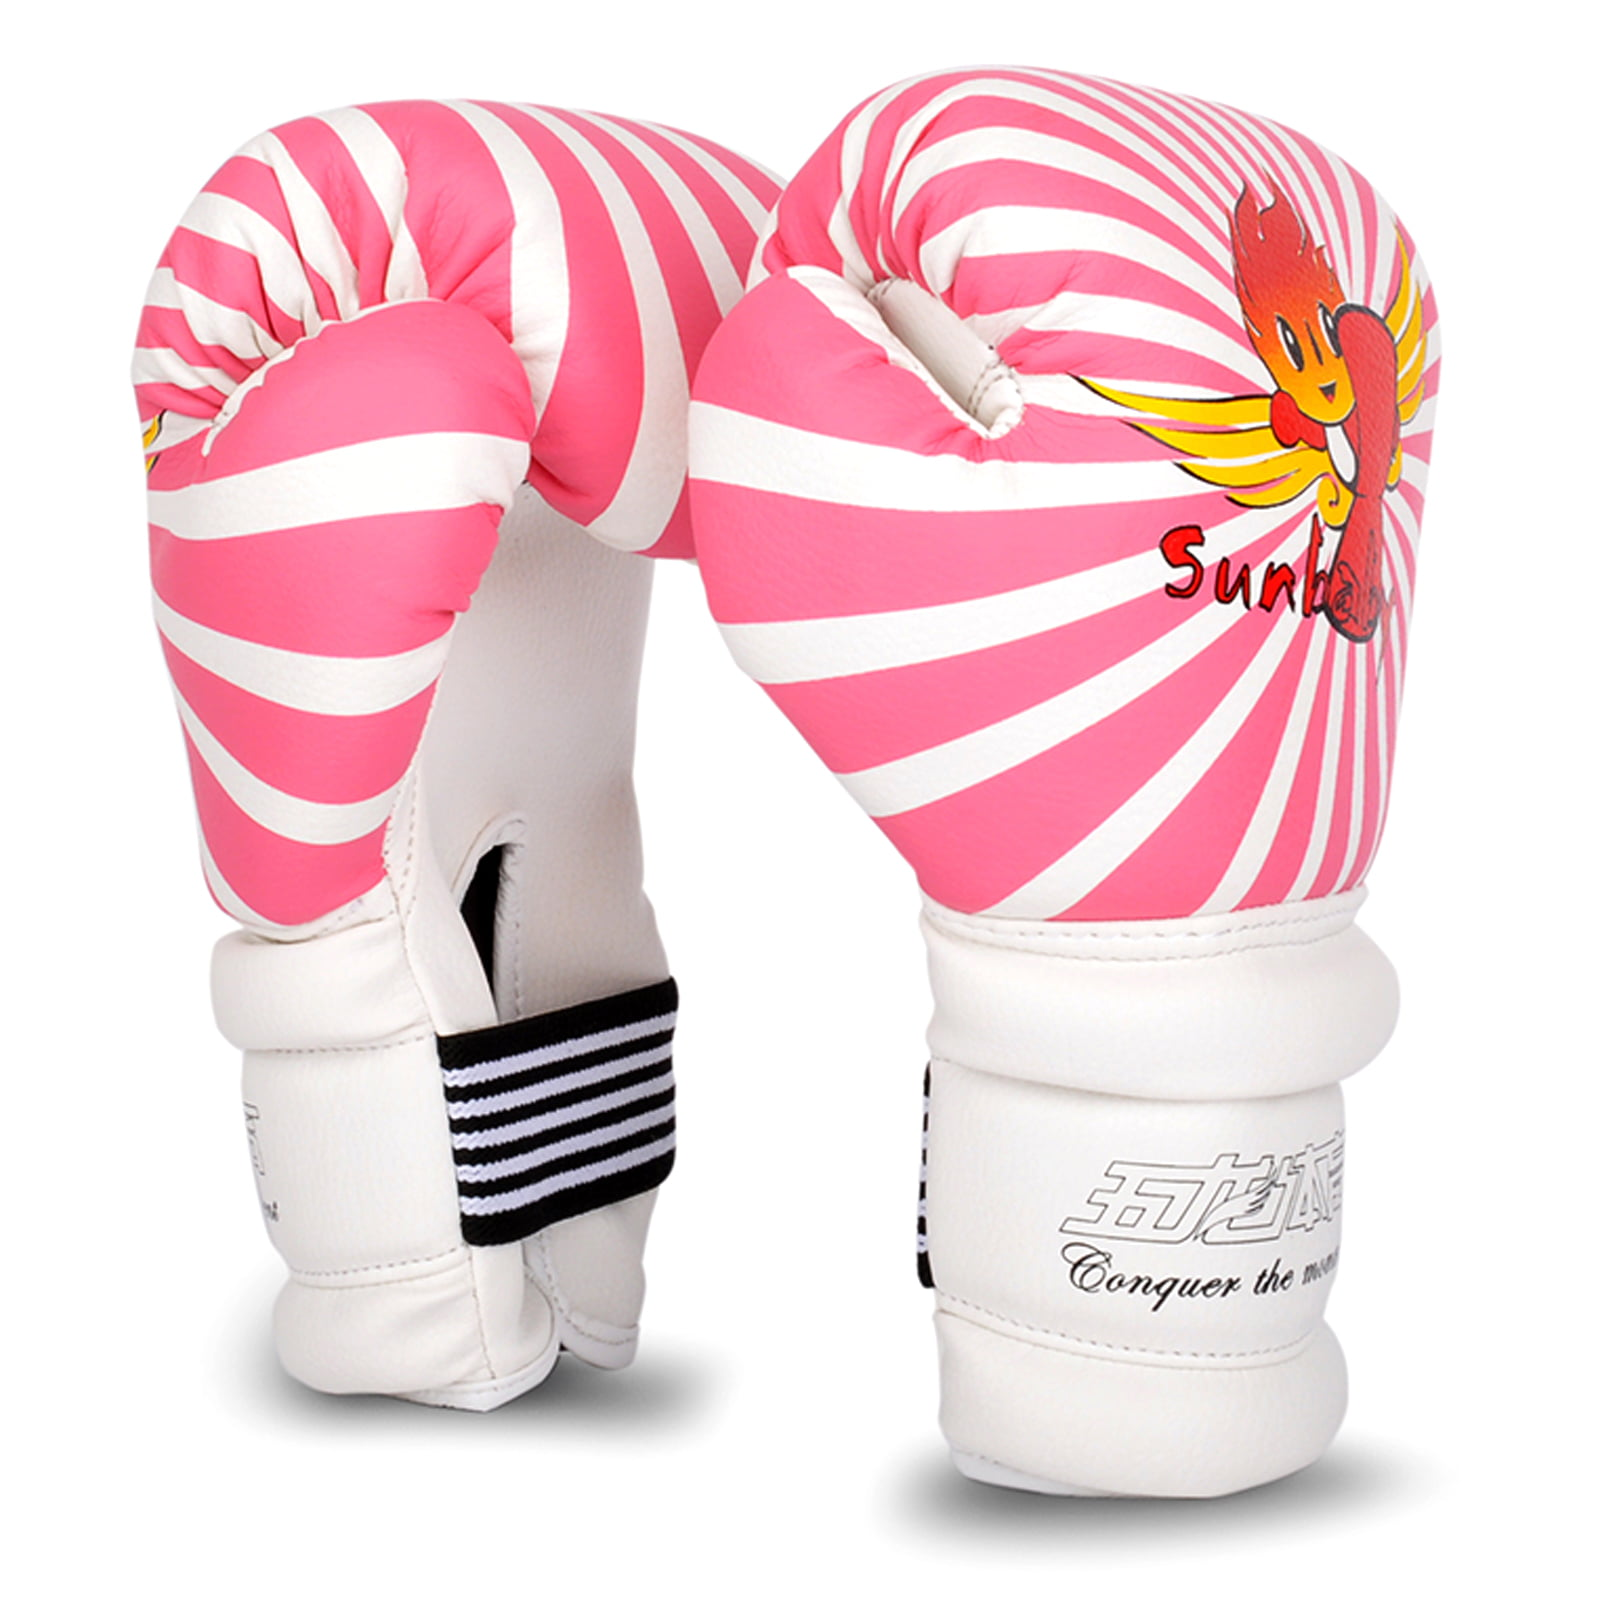 Cheerwing 6oz PU Kids Boxing Gloves Junior Cartoon Punch Bag MMA Sparring Dajn Training by Wolon